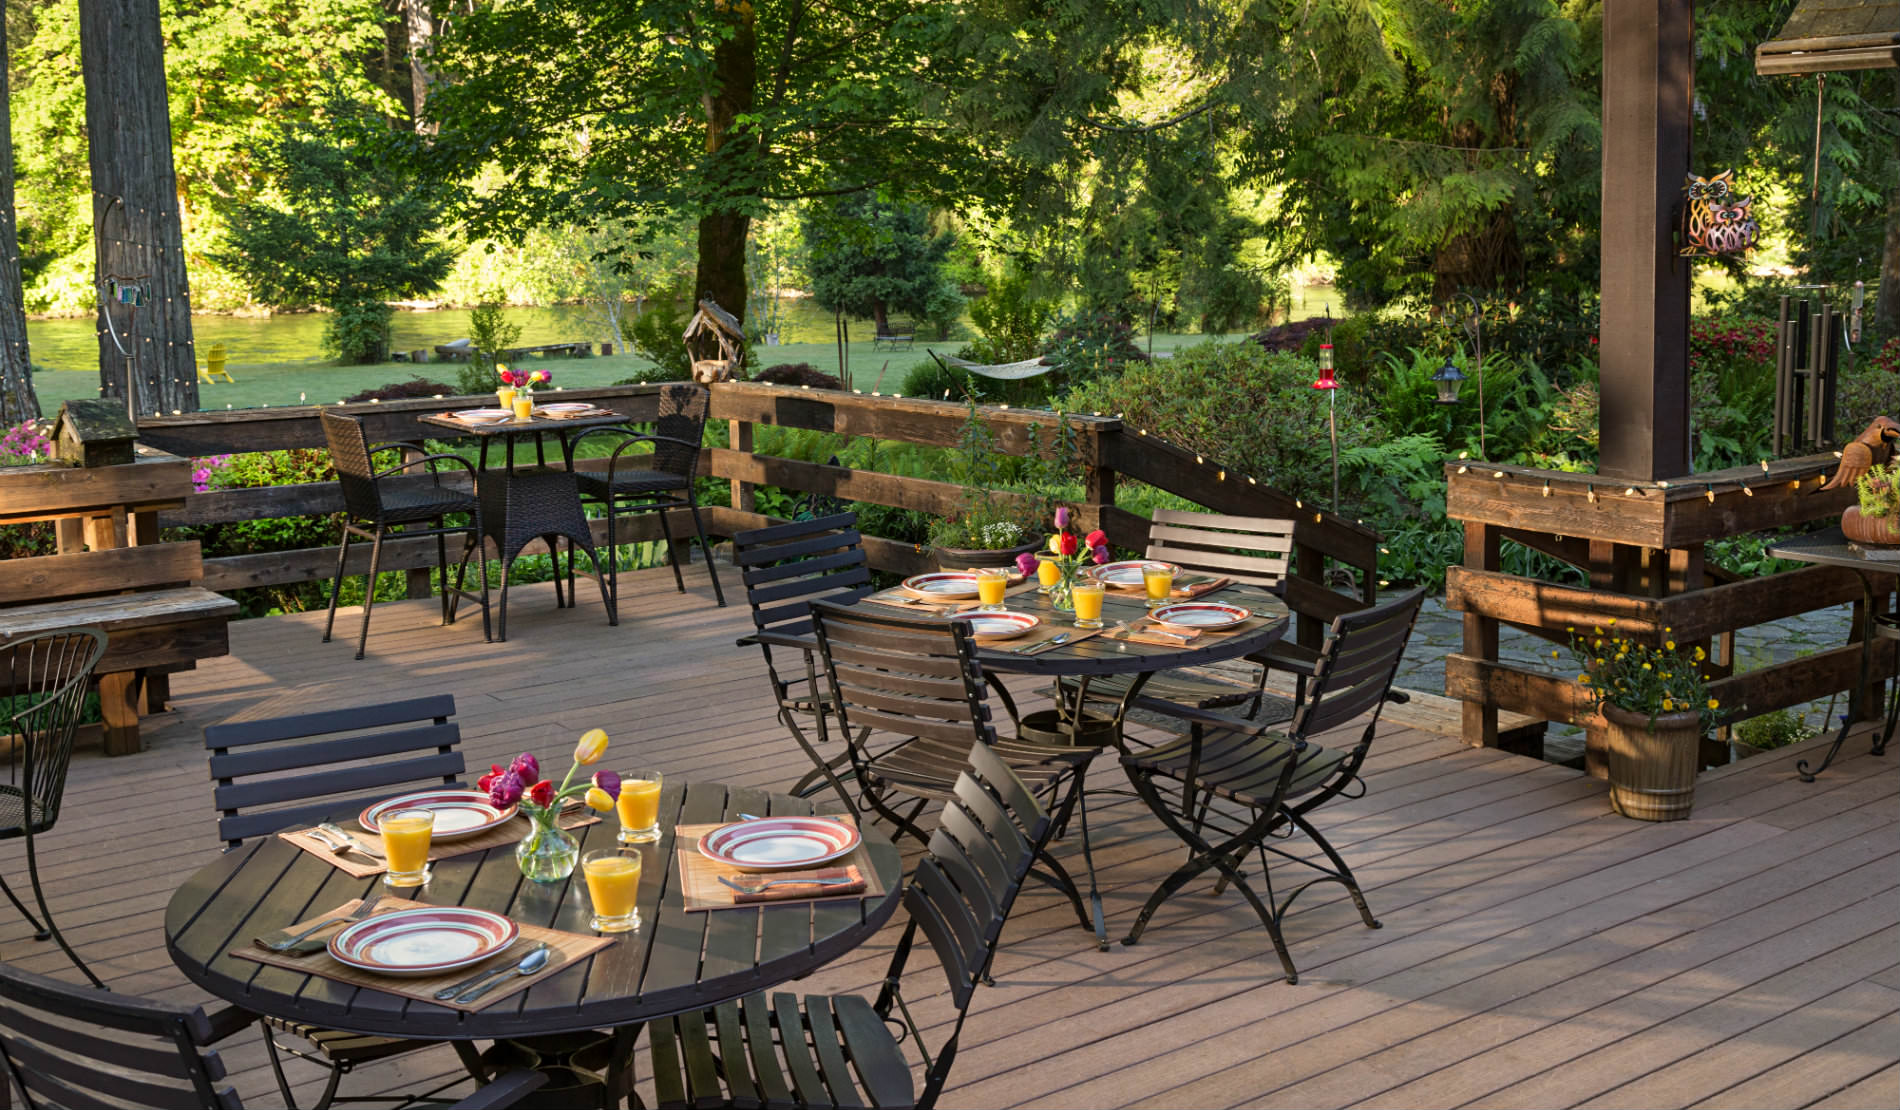 Wooden deck with lights and small wooden tables set with dishes